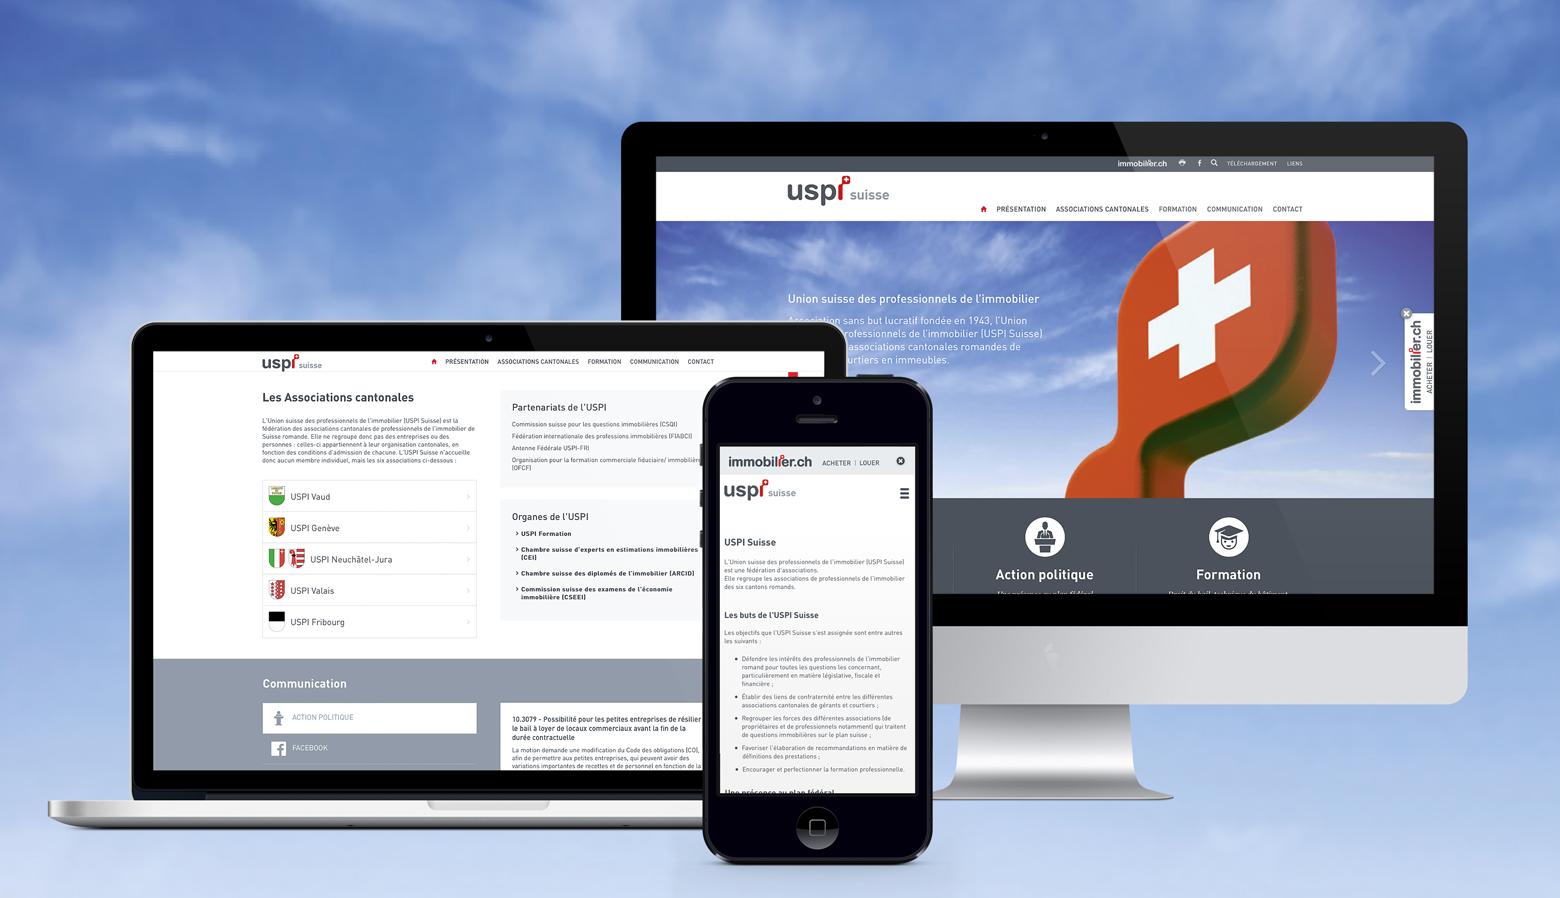 [Translate to English:] USPI Suisse WNG Agence Digitale